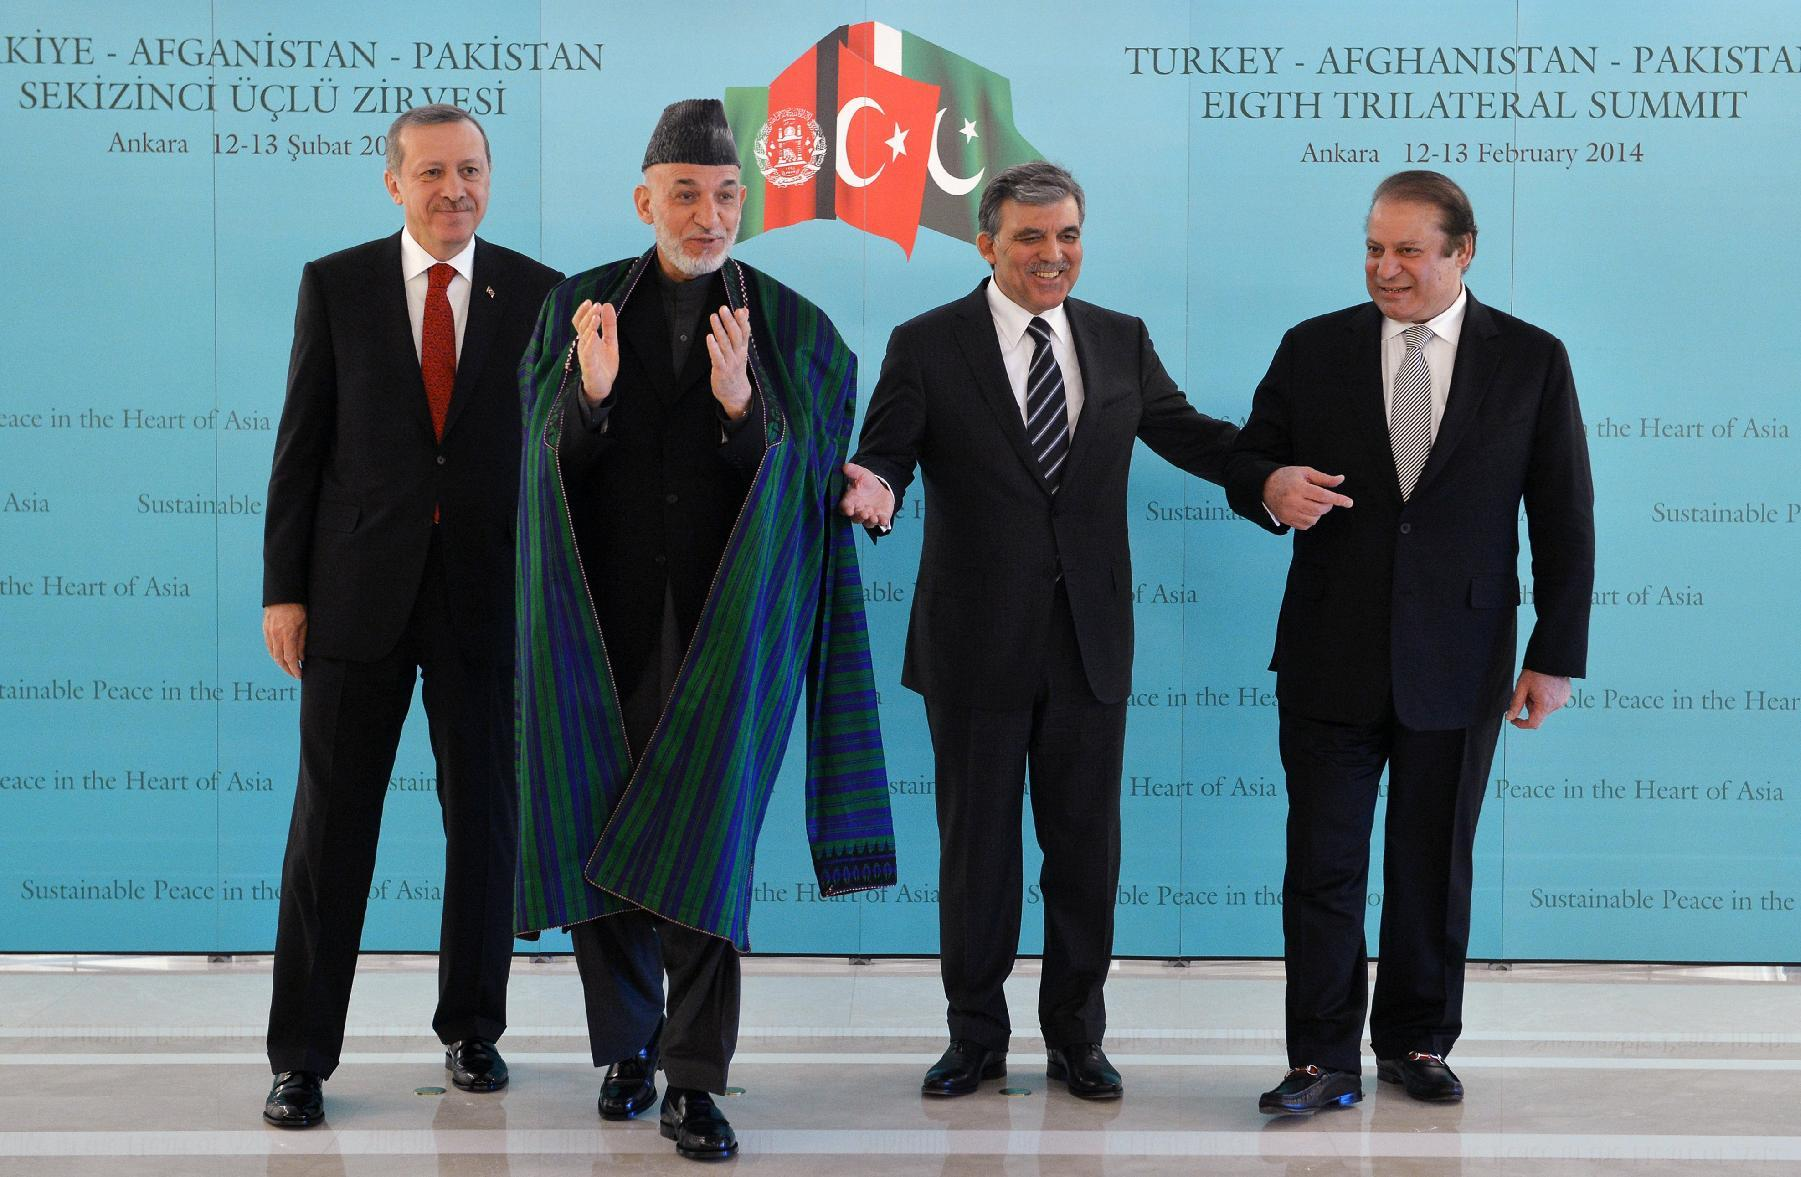 Karzai: US must respect Afghan sovereignty